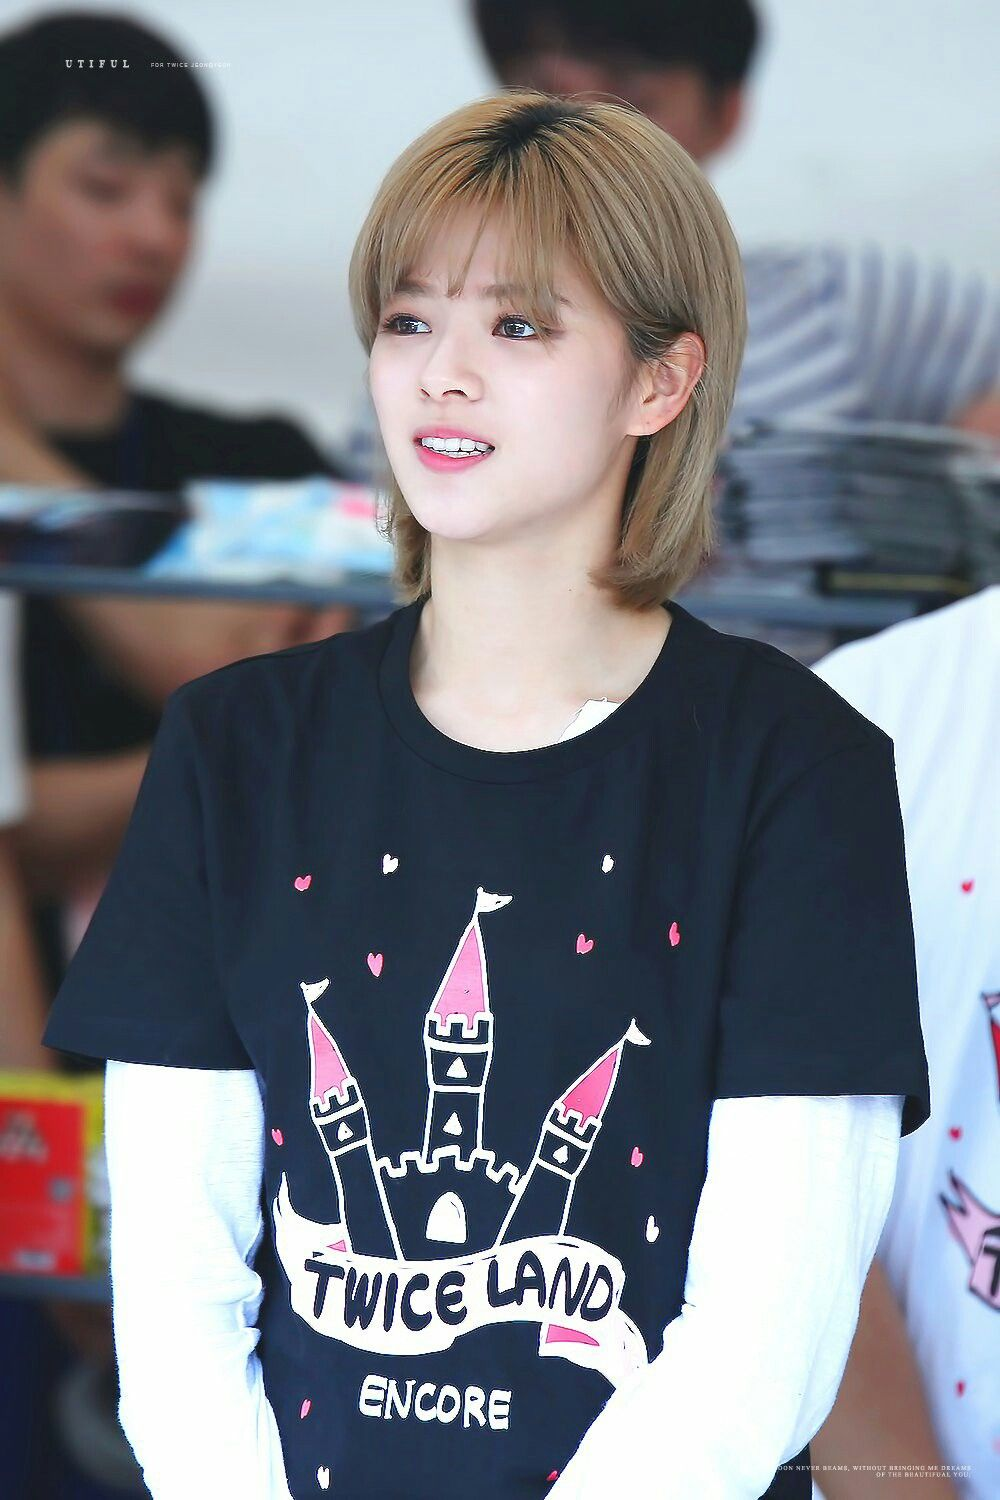 Pin by haroo onnie on yoo jungyeon twice pinterest girl crushes